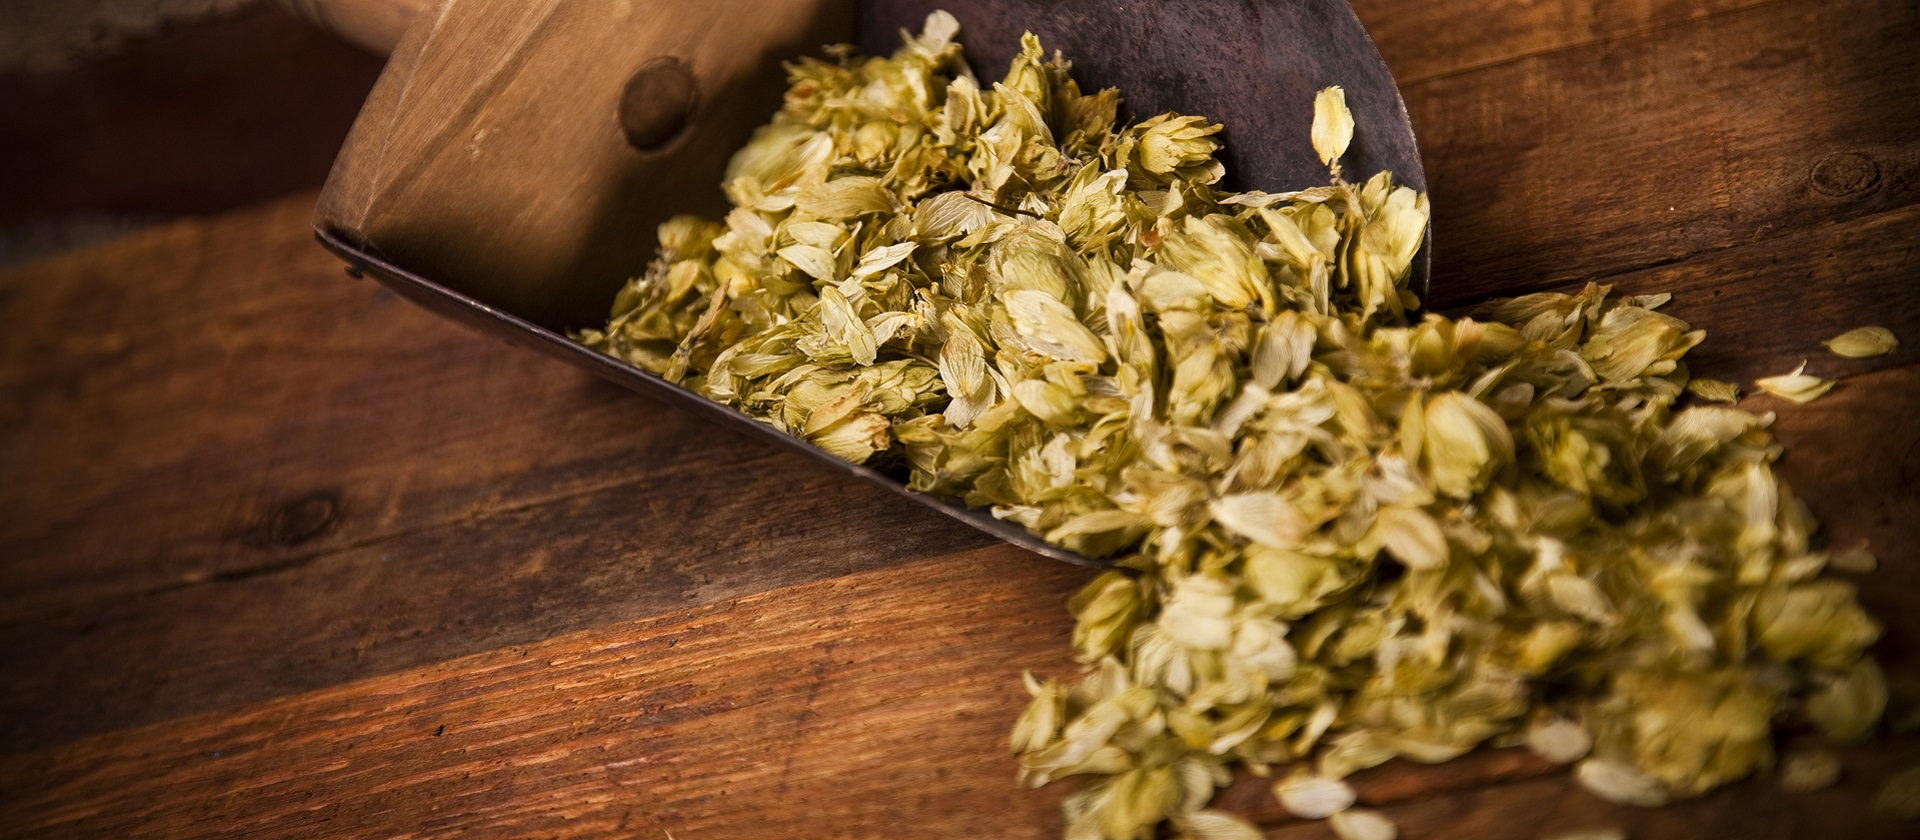 scoop of hops on a counter at Black Creek Brewery